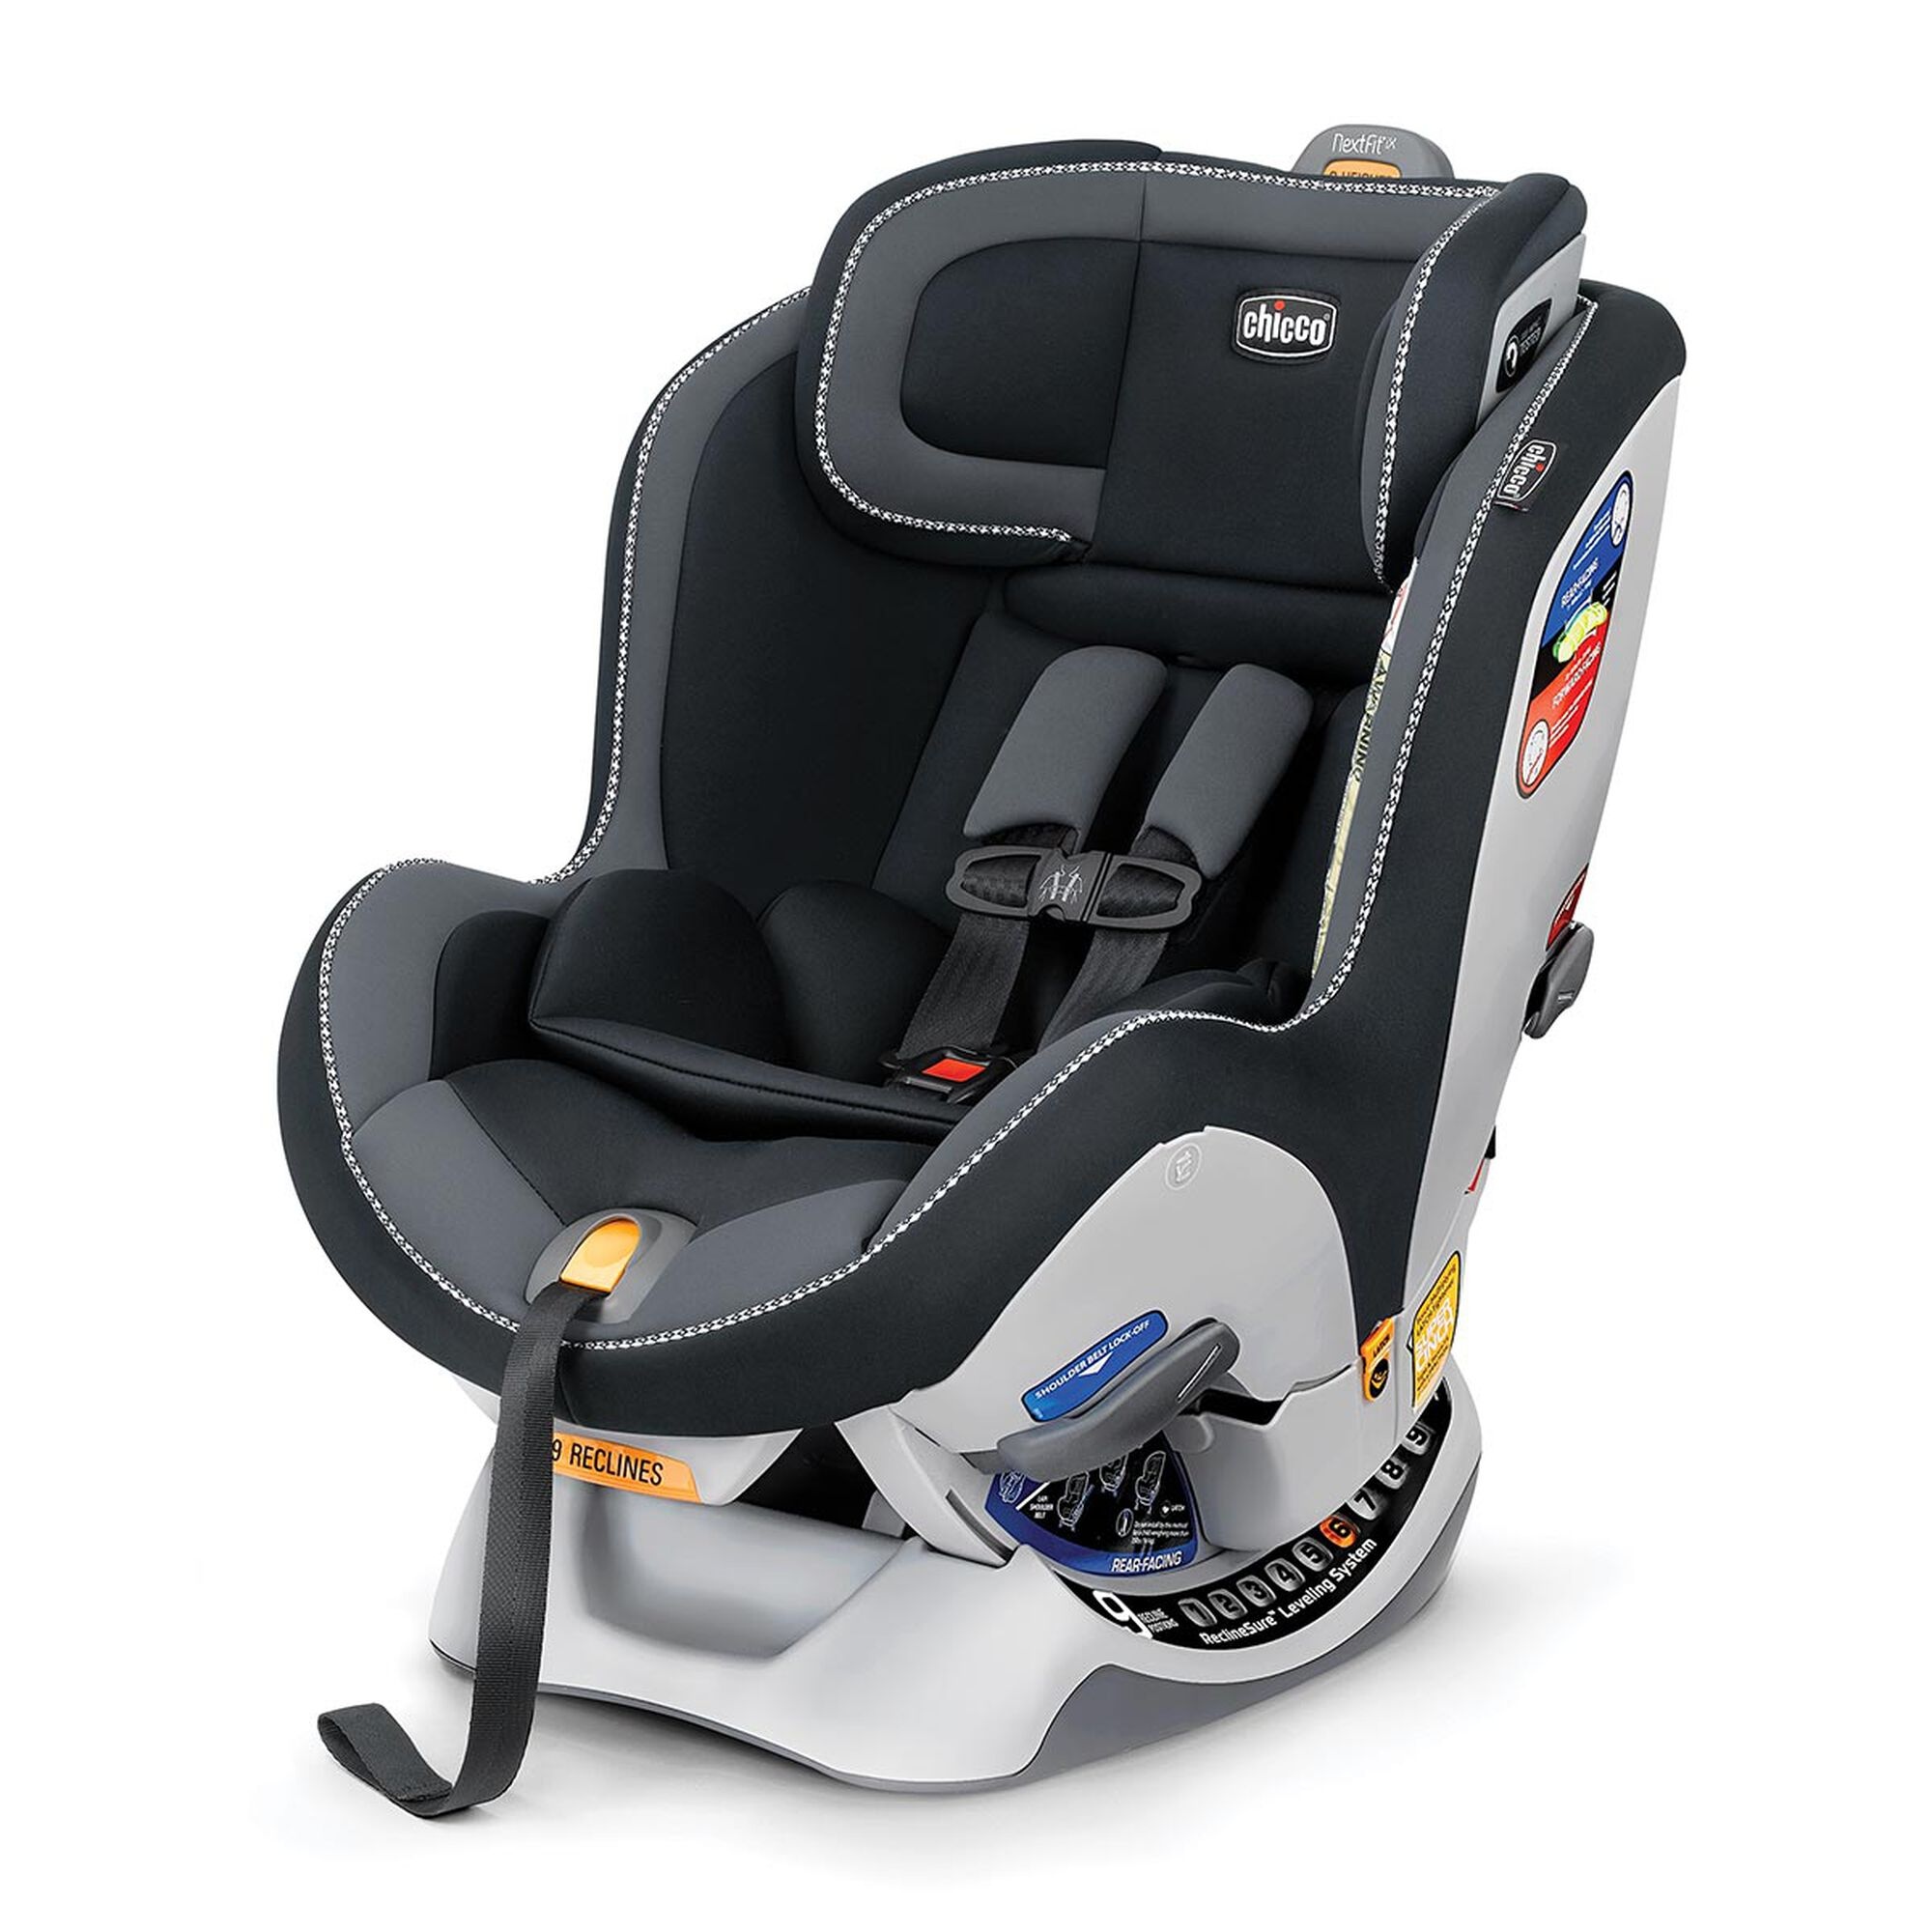 lowest price 70ab0 4e397 Chicco NextFit iX Convertible Car Seat - Mirage fashion